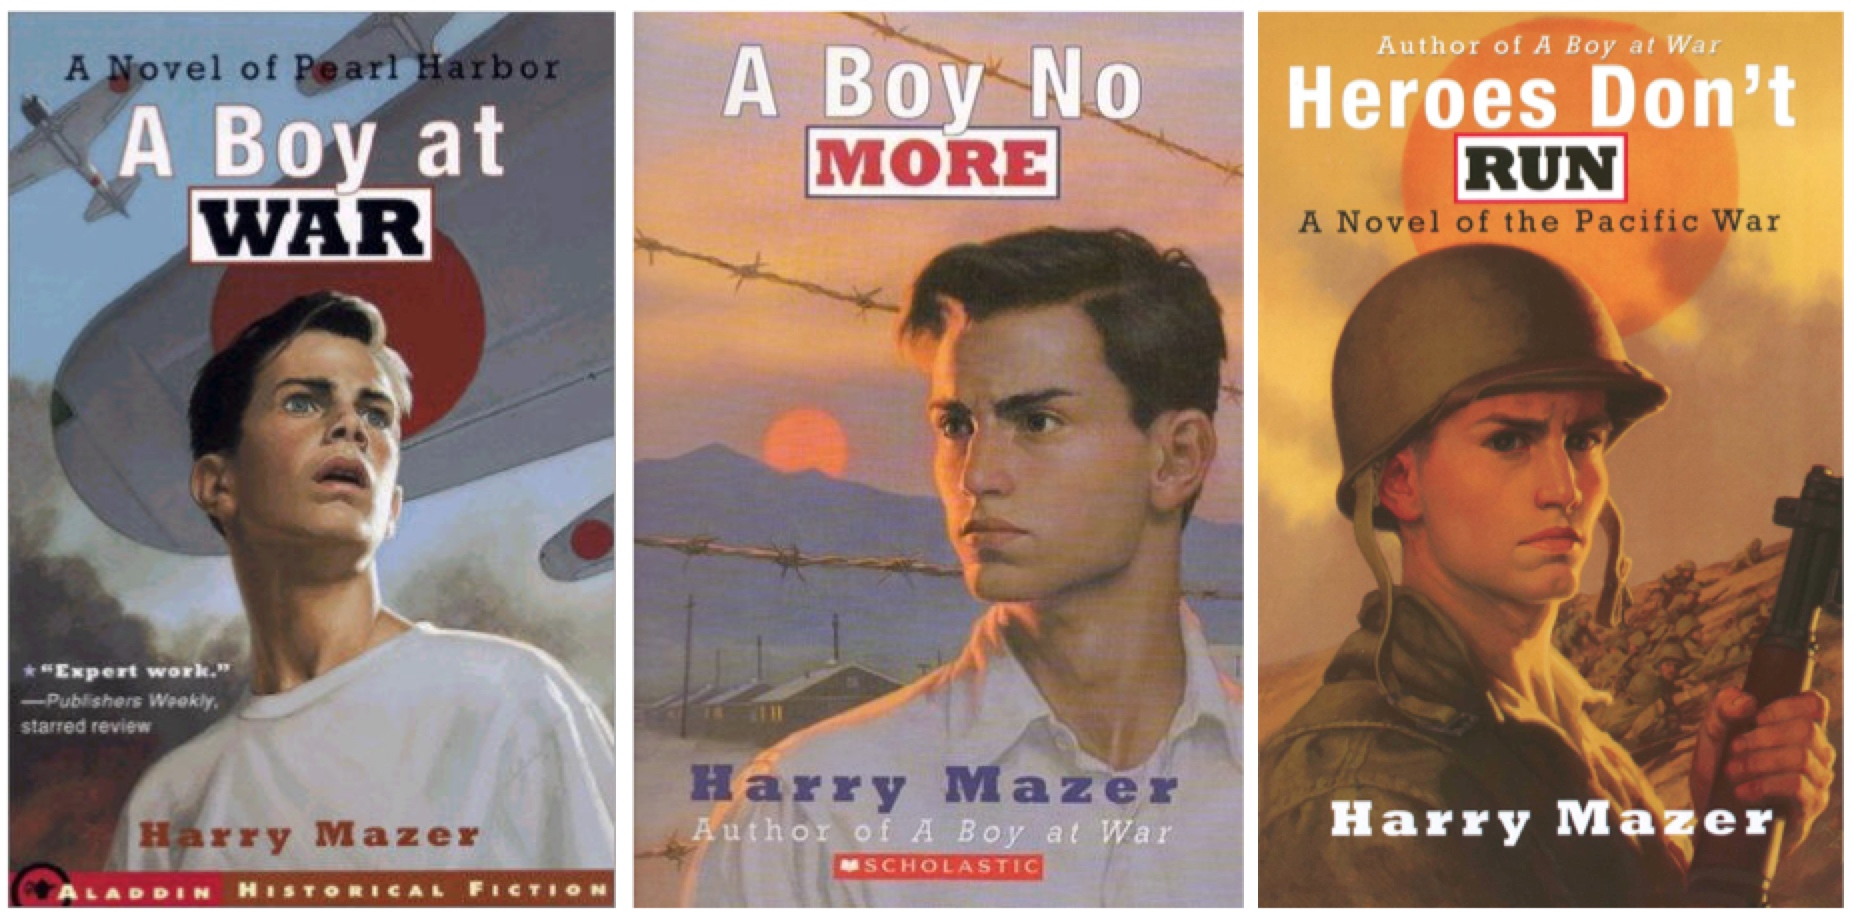 World War II in the Pacific through Harry Mazer's novels